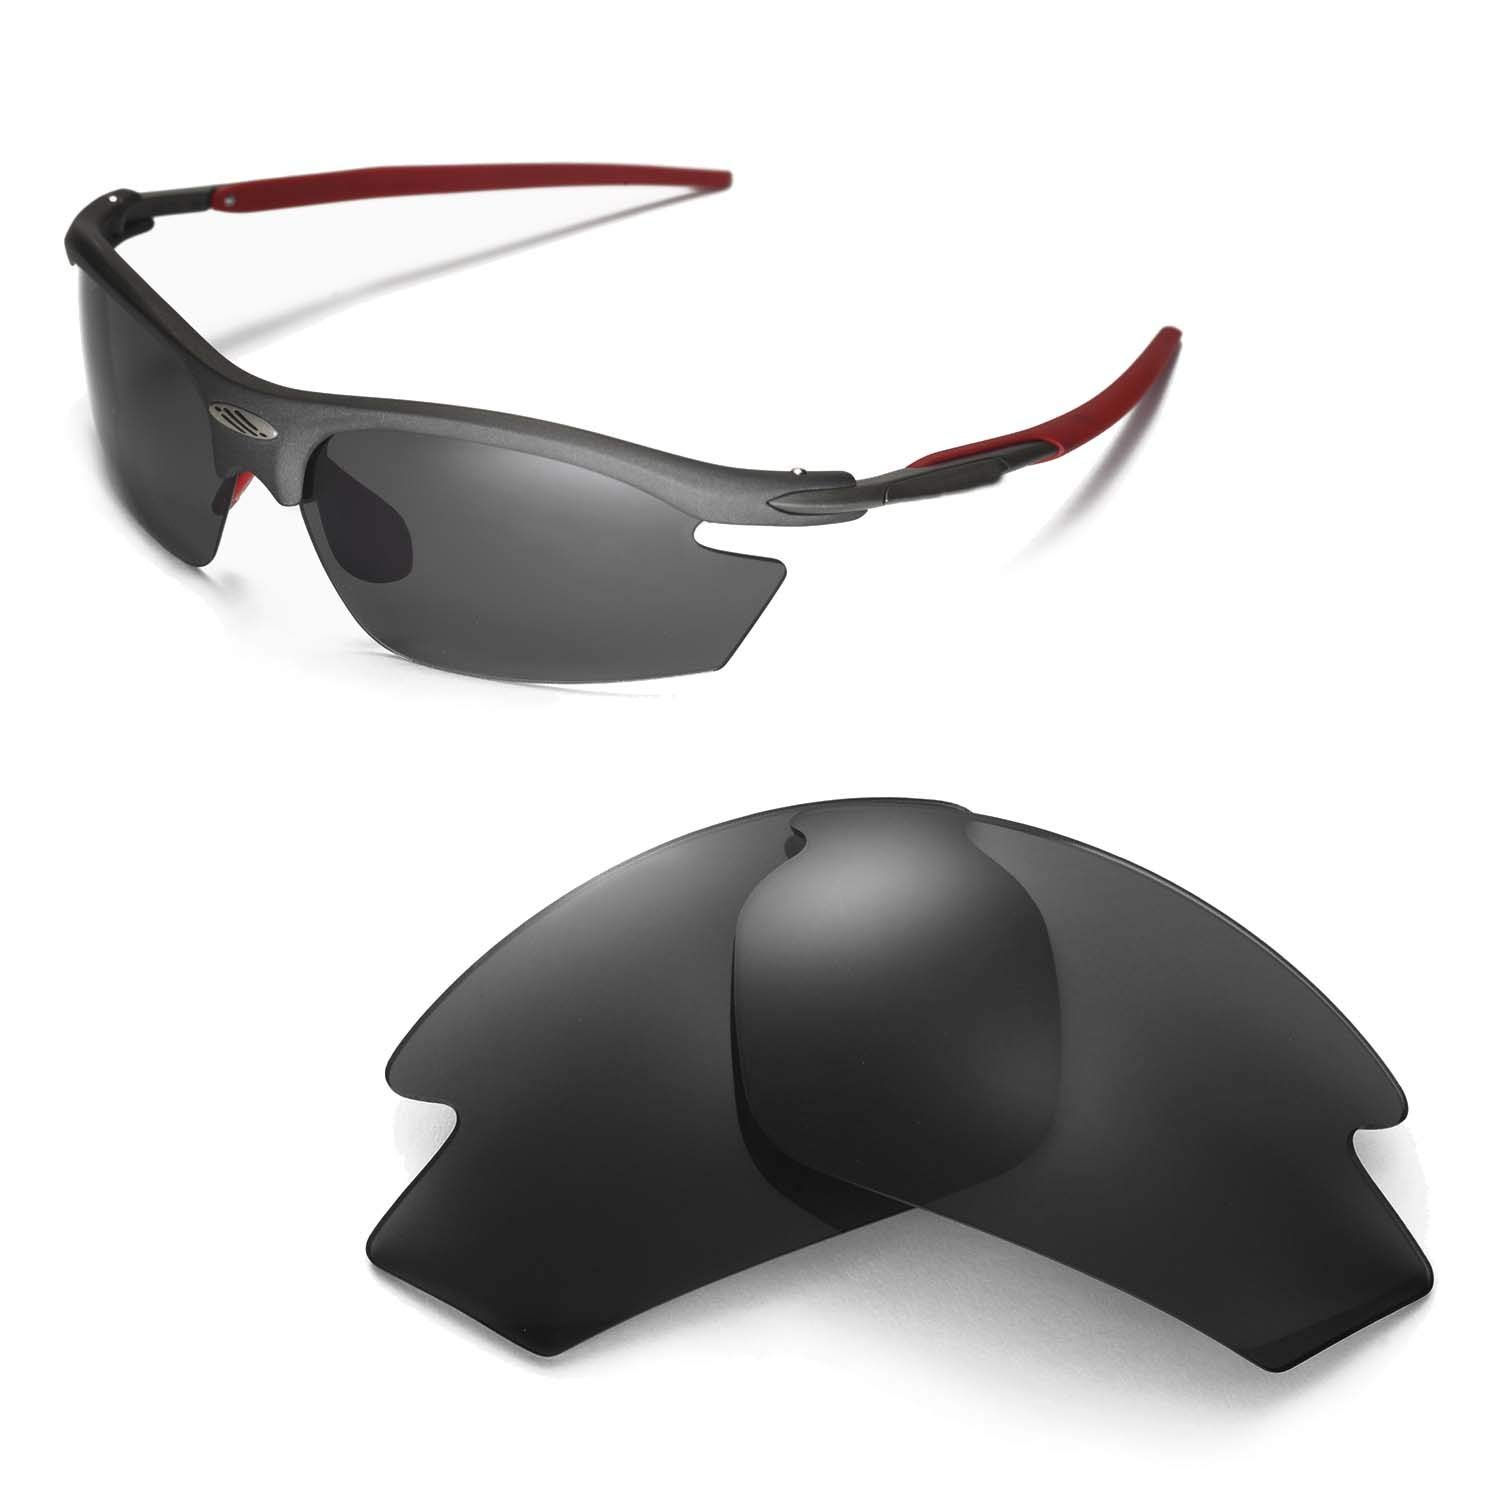 1c0a736426 Get Quotations · Walleva Replacement Lenses for Rudy Project Rydon  Sunglasses - 16 Options Available